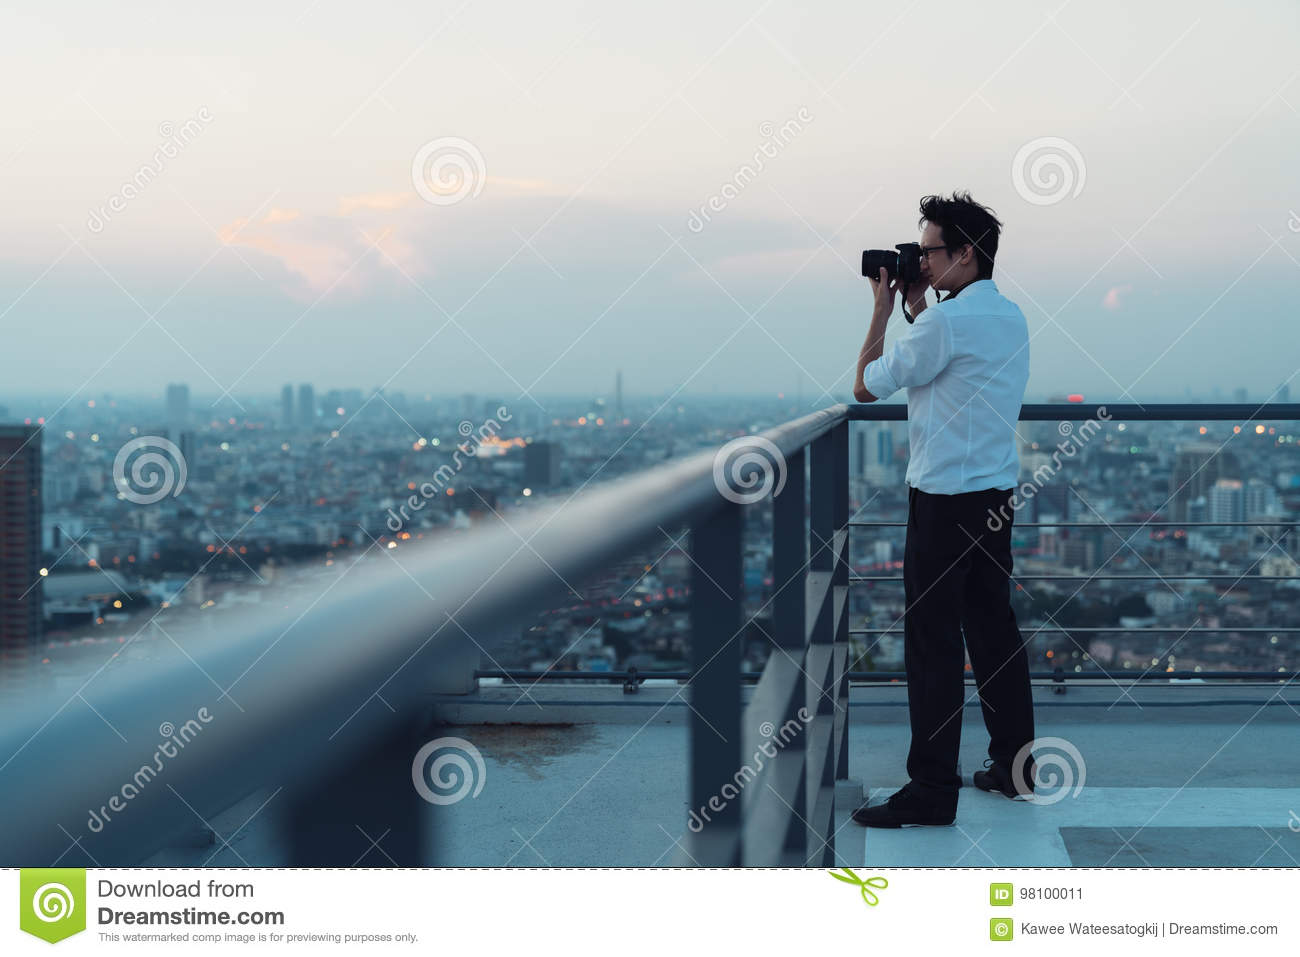 Download Asian Man Taking Cityscape Photo On Building Rooftop In Low Light Situation. Photography & Asian Man Taking Cityscape Photo On Building Rooftop In Low Light ...